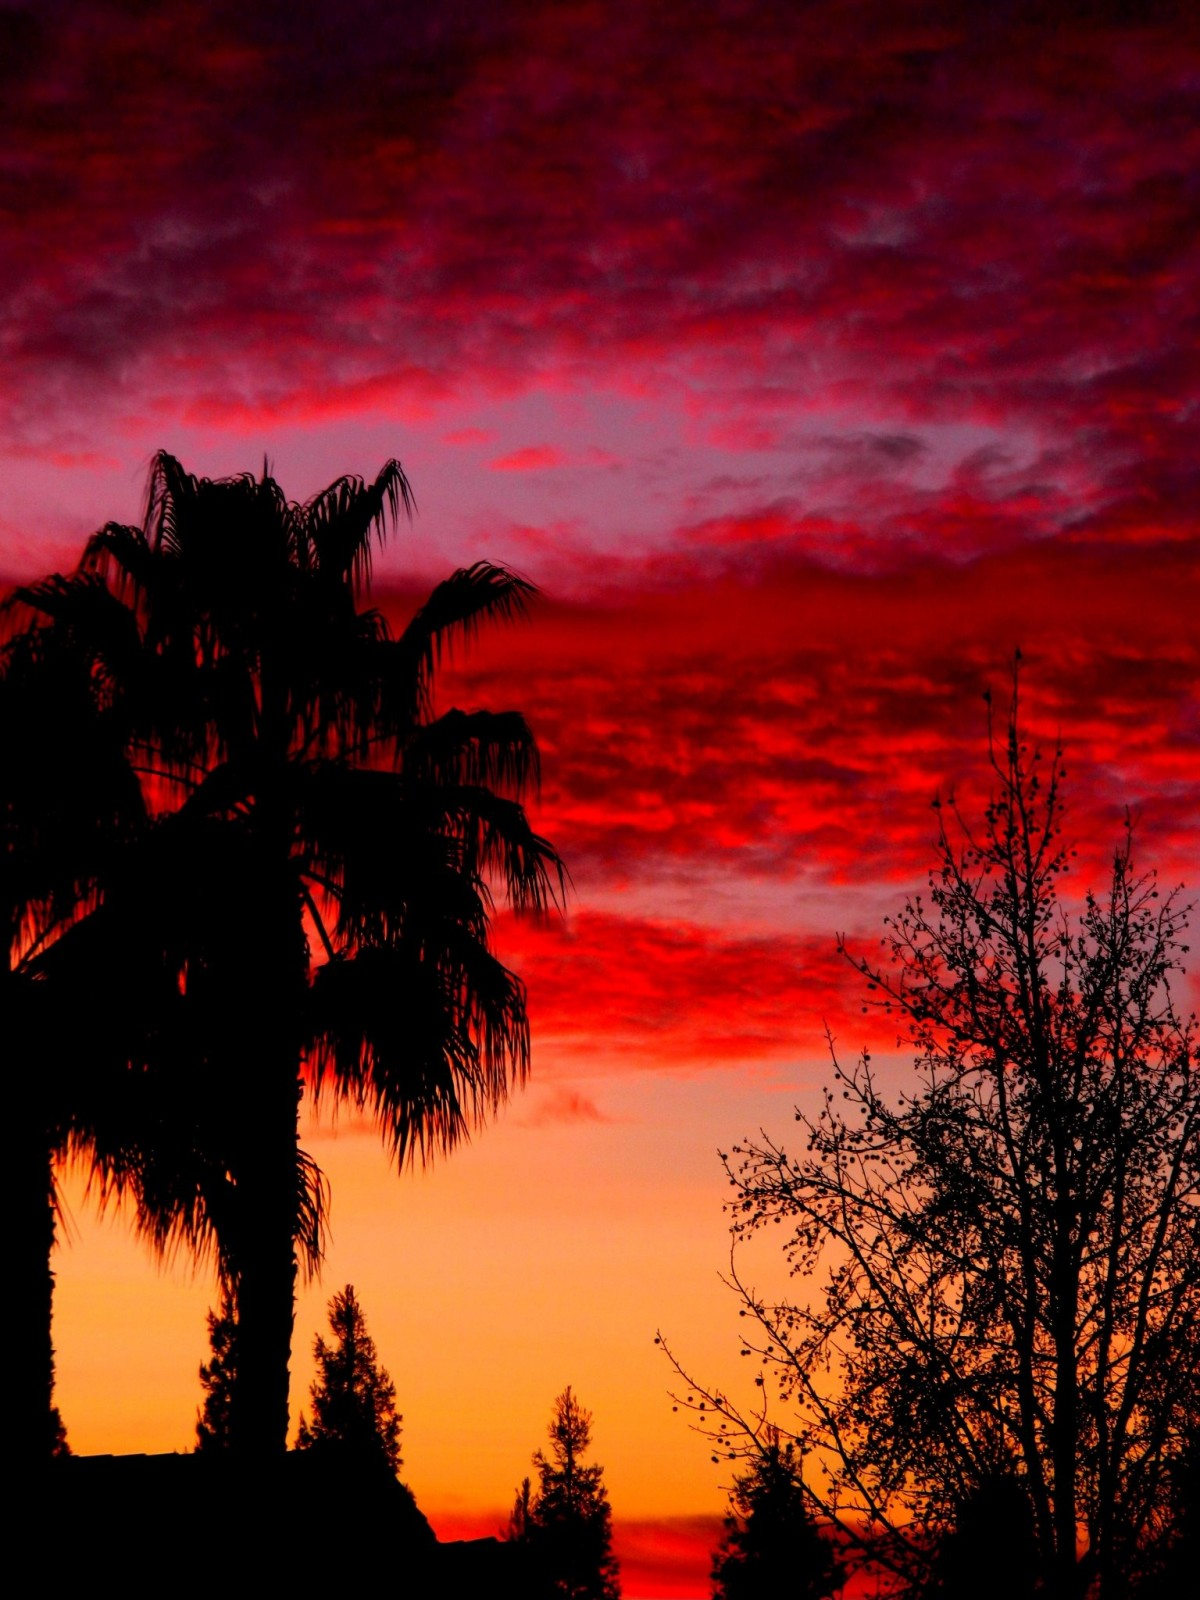 Pink and orange sunset with a palm tree